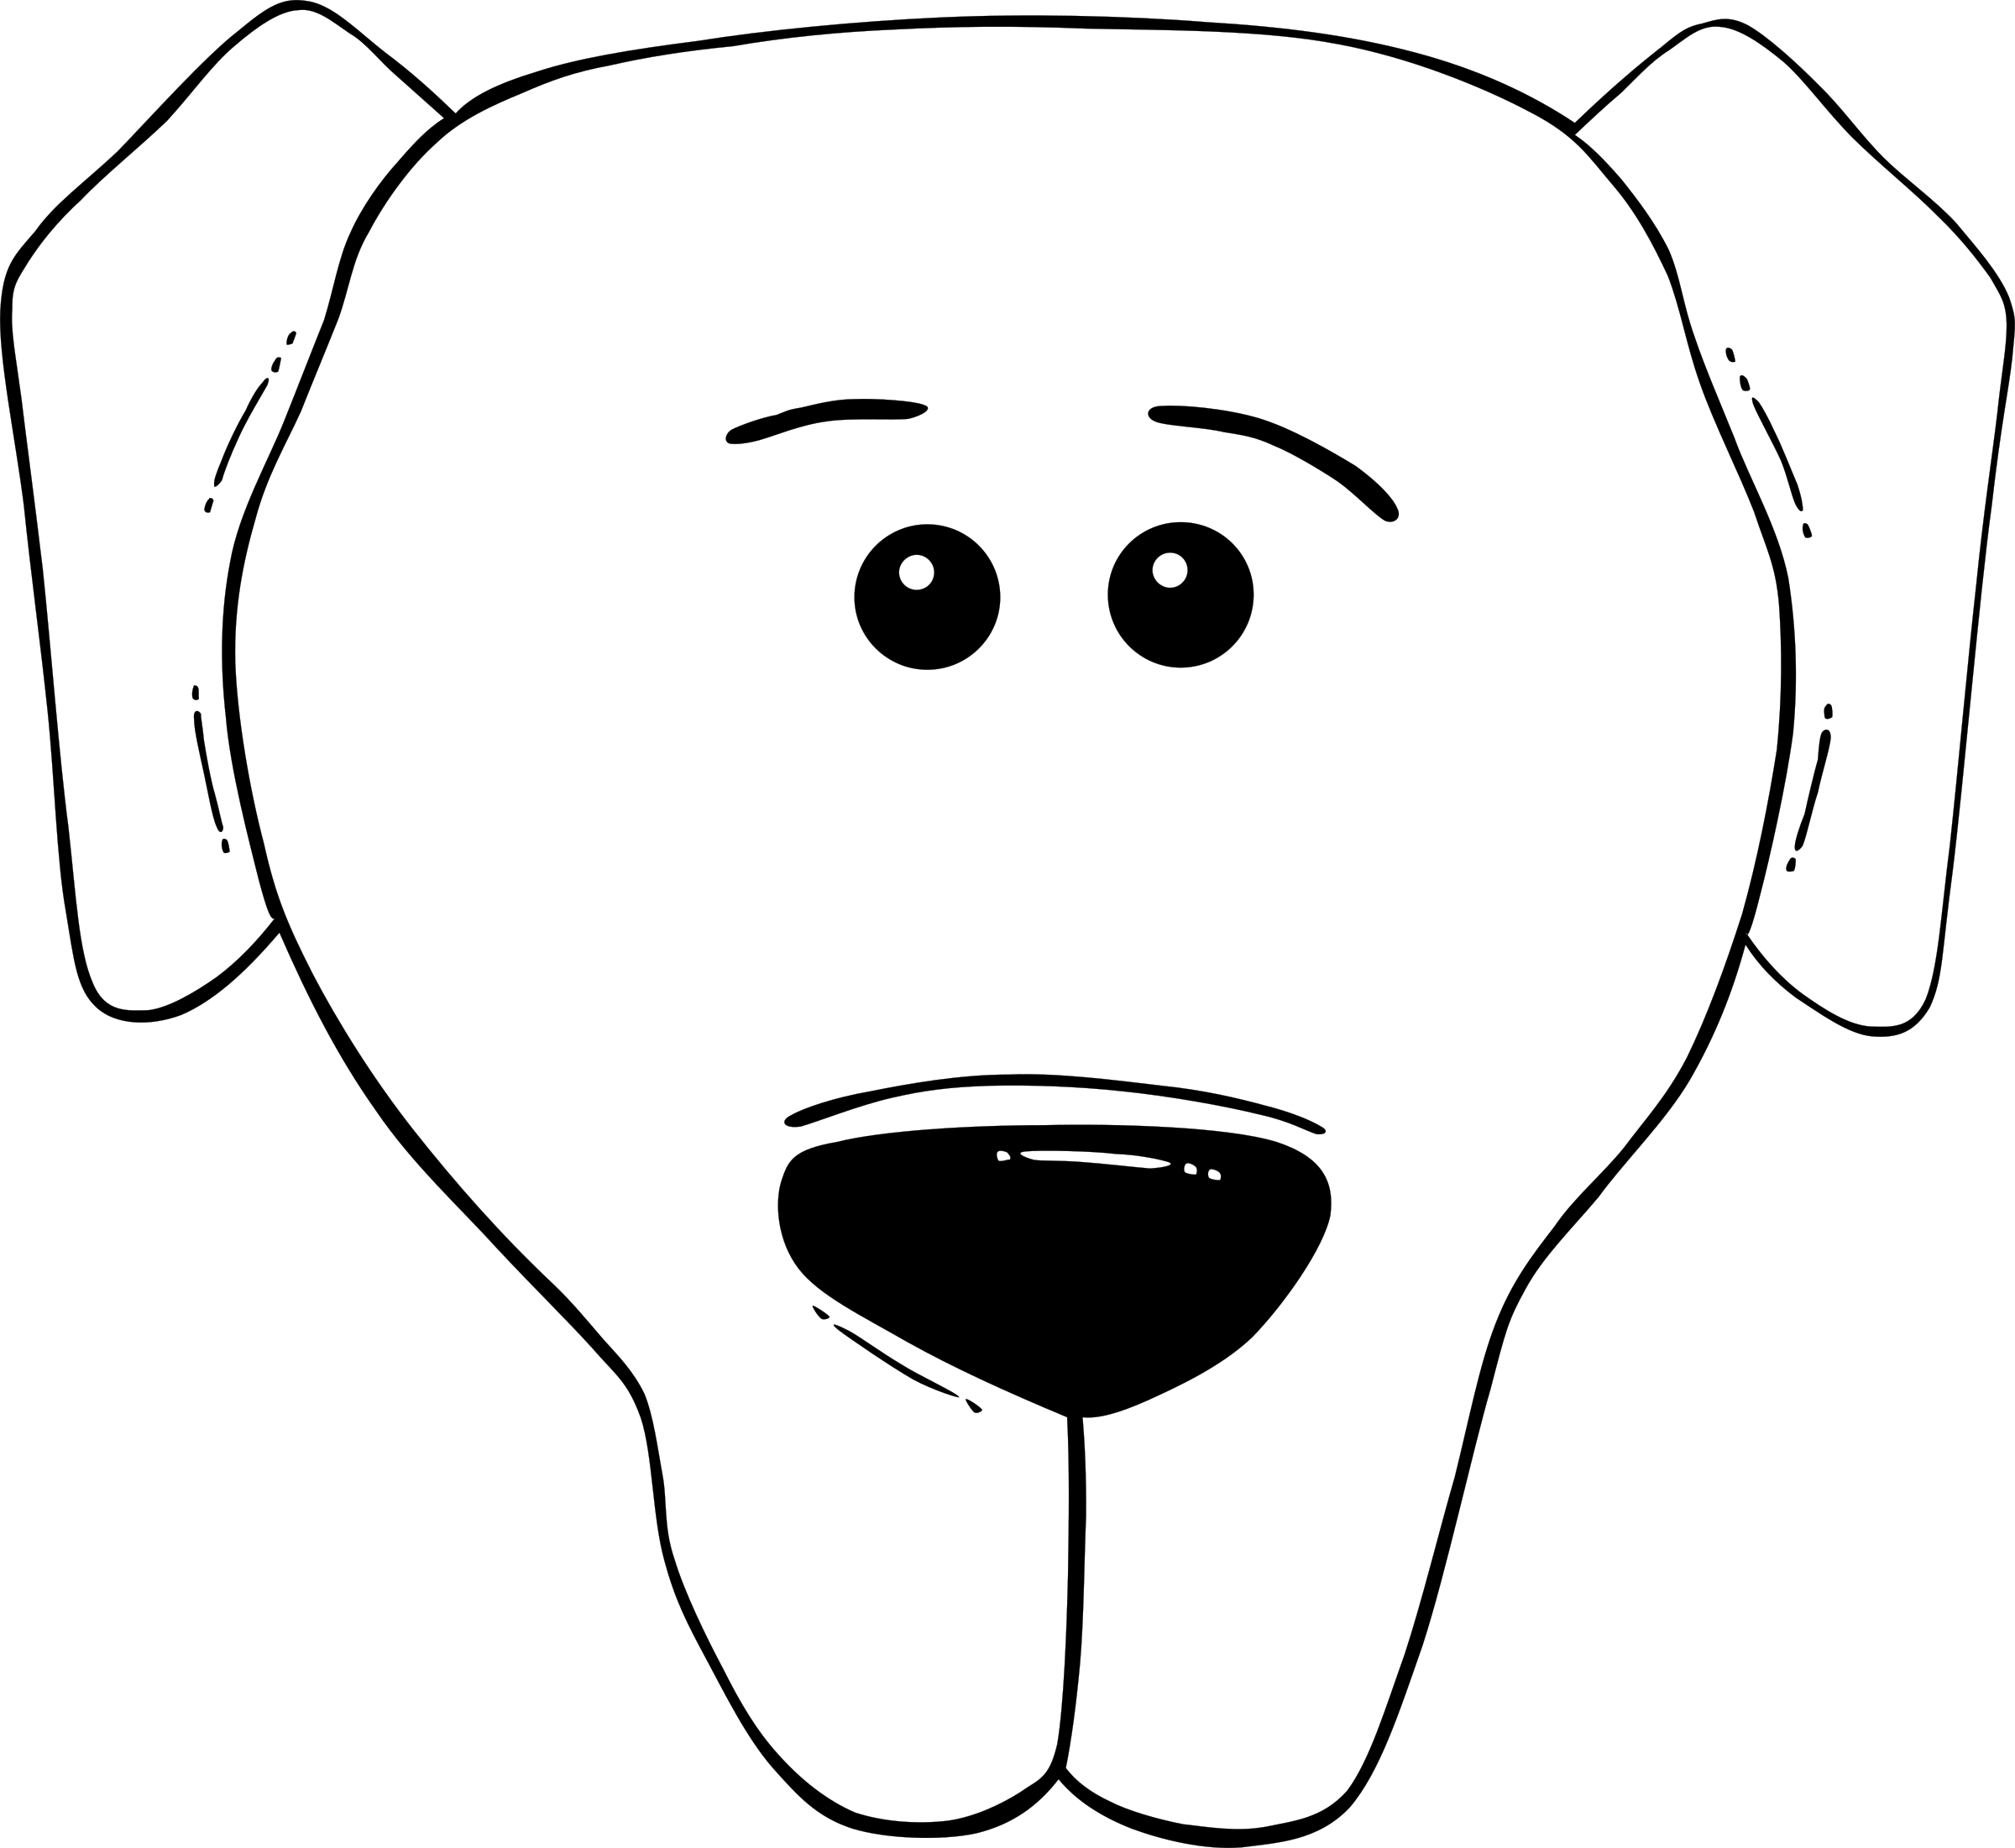 Dog Face Cartoon - World Label by Gerald_G